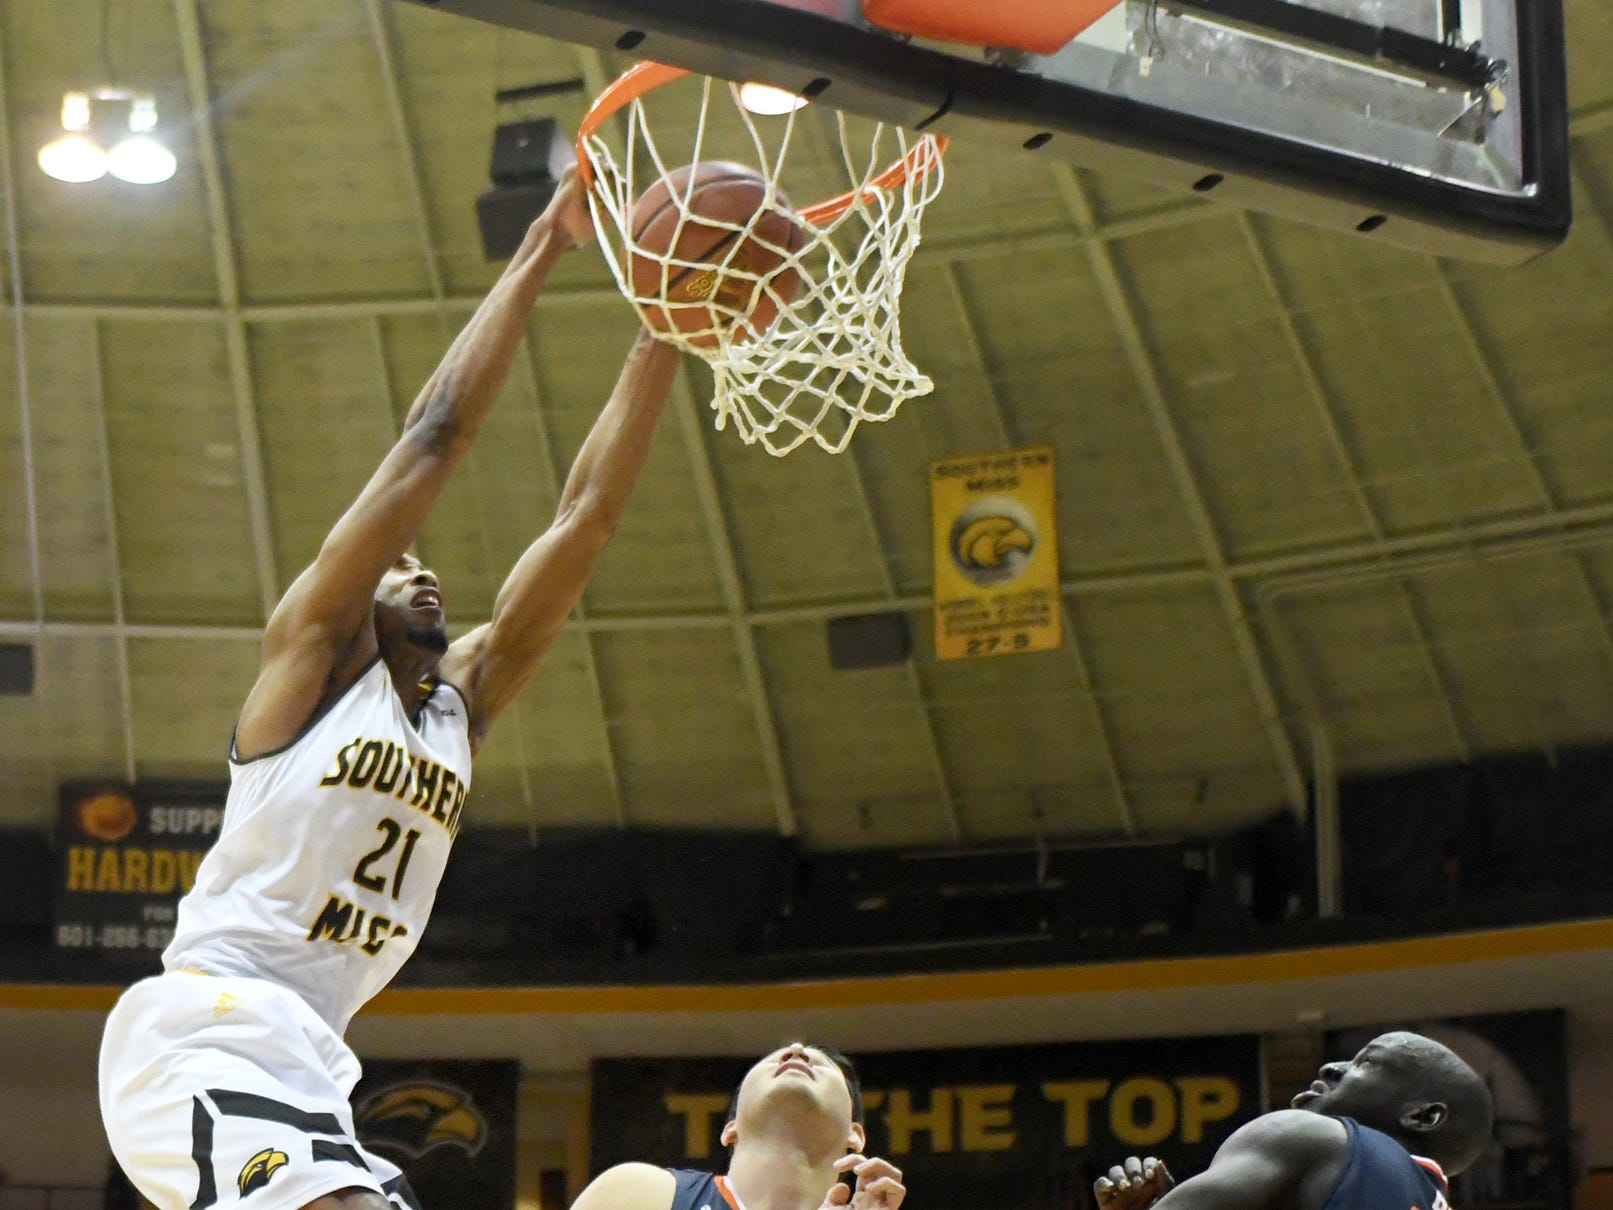 Southern Miss guard Anfernee Hampton dunks the ball in a game against UTSA in Reed Green Coliseum on Saturday, March 9, 2019.